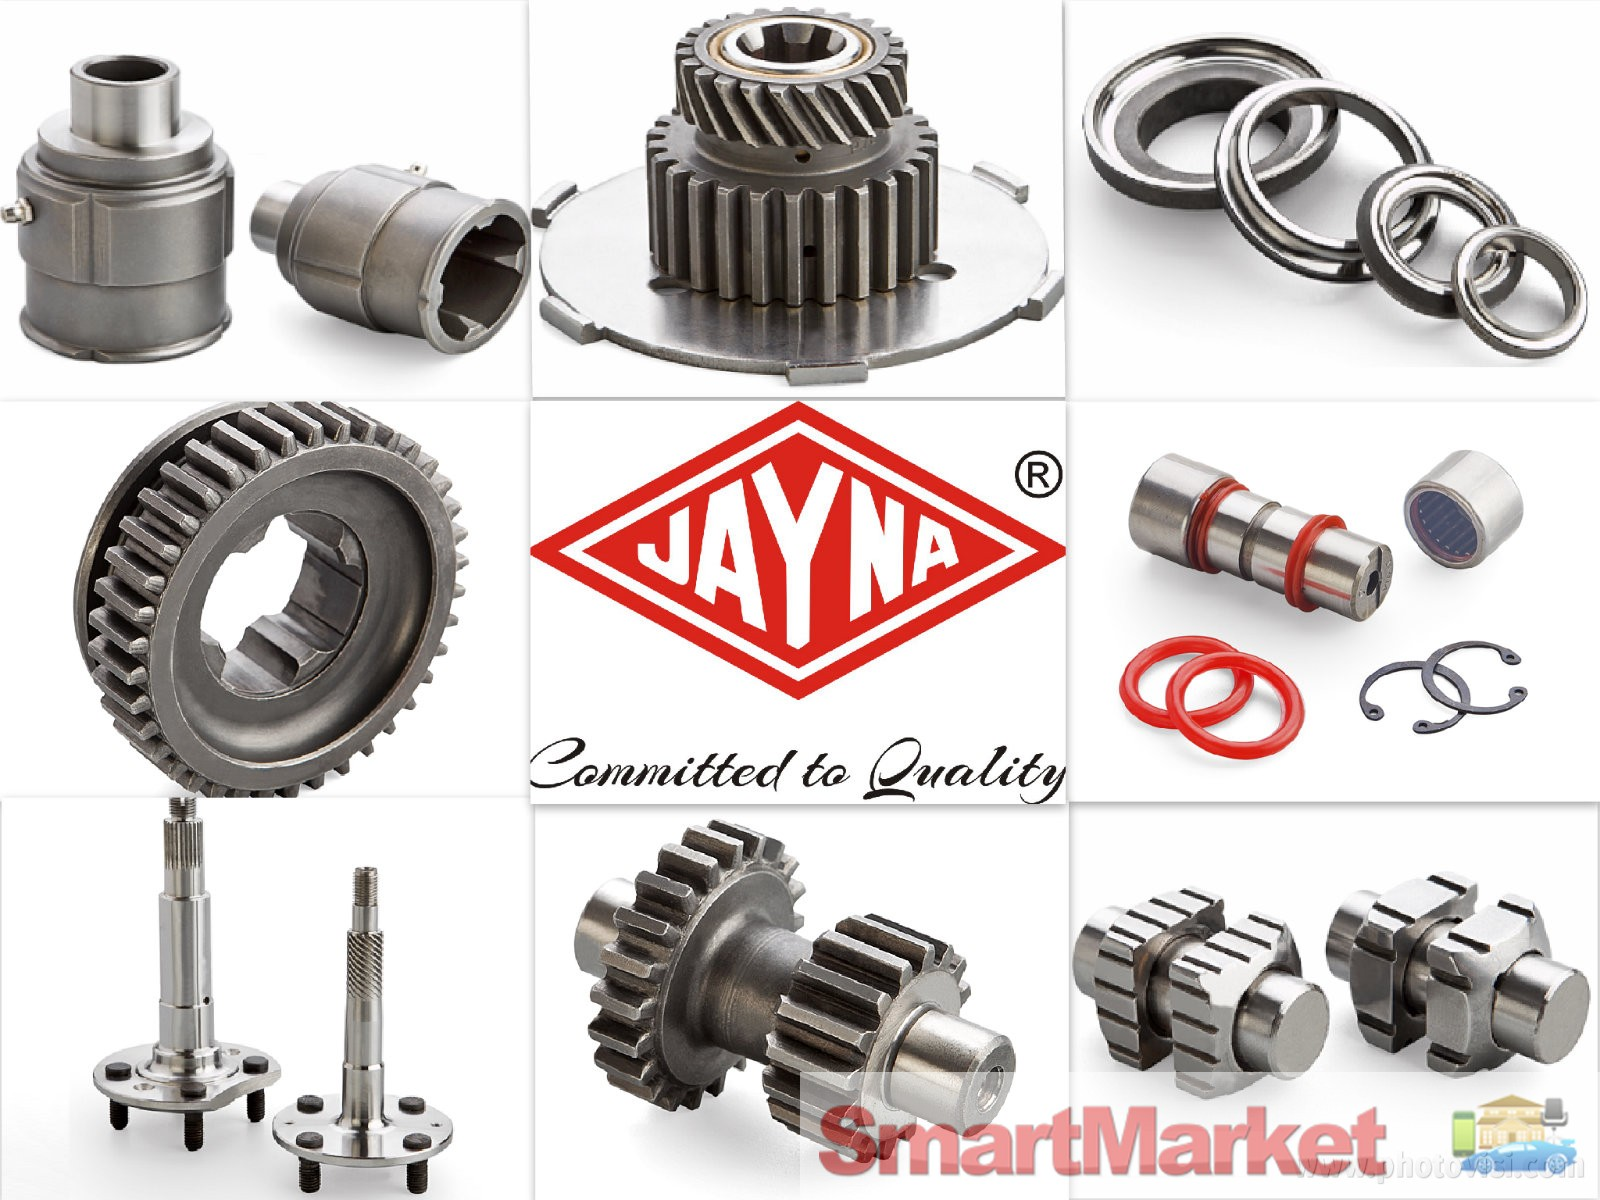 Three wheeler spare parts For Sale in Colombo | SmartMarket.lk